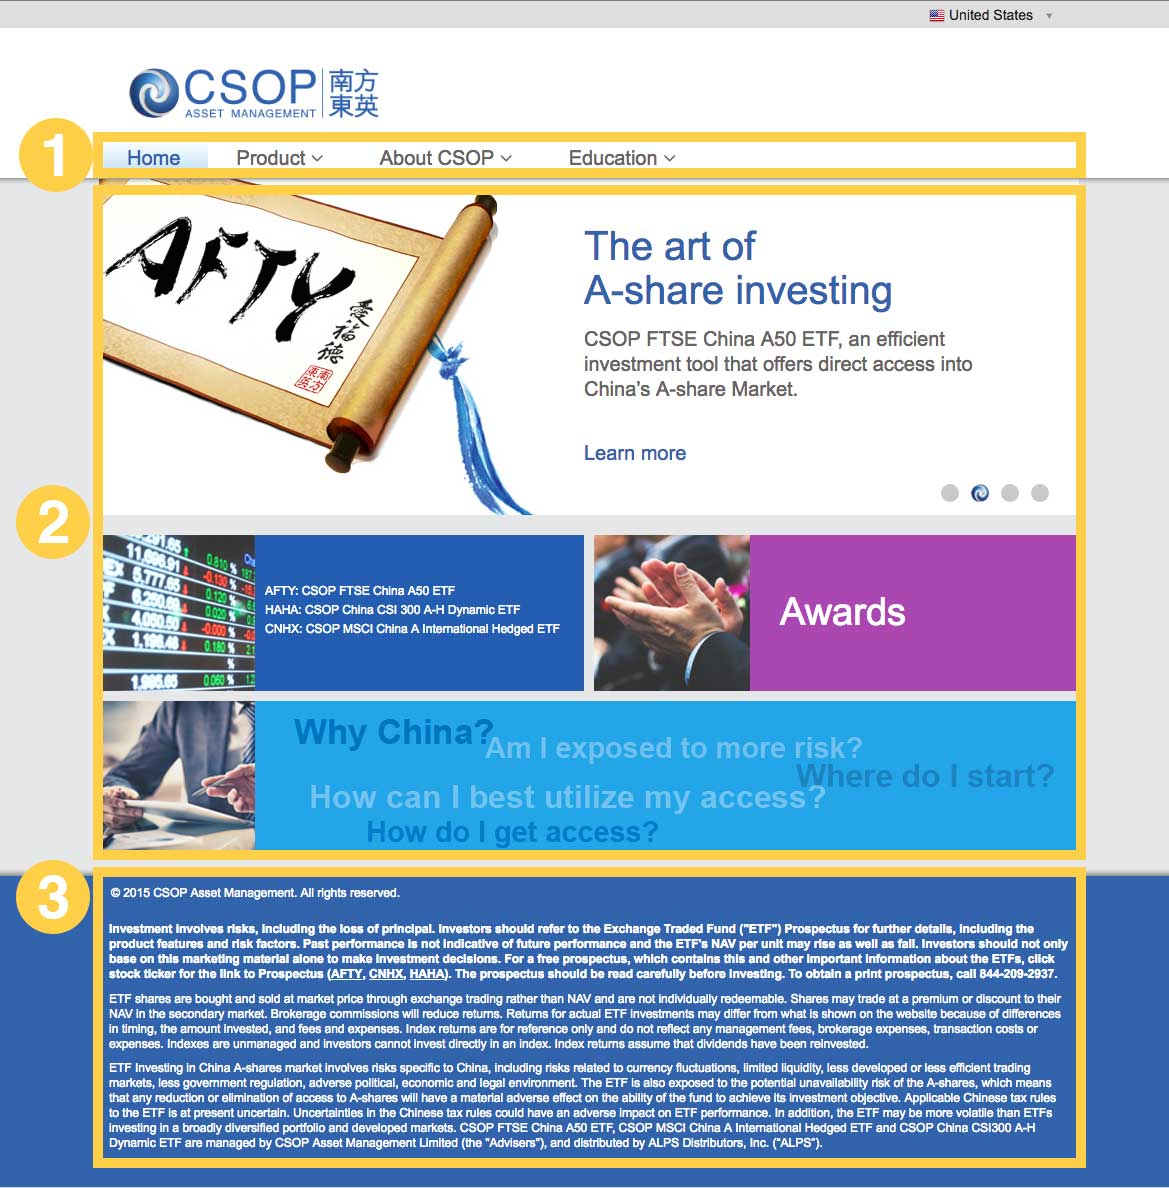 original homepage - 1. Main navigation needs to be redesigned, to accommodate additional categories that the client added.2. The modularized look makes the homepage very clean. However, information on the homepage needs to be organized better.3. The footer takes a chunk of screen space, which produces unnecessary visual chaos.